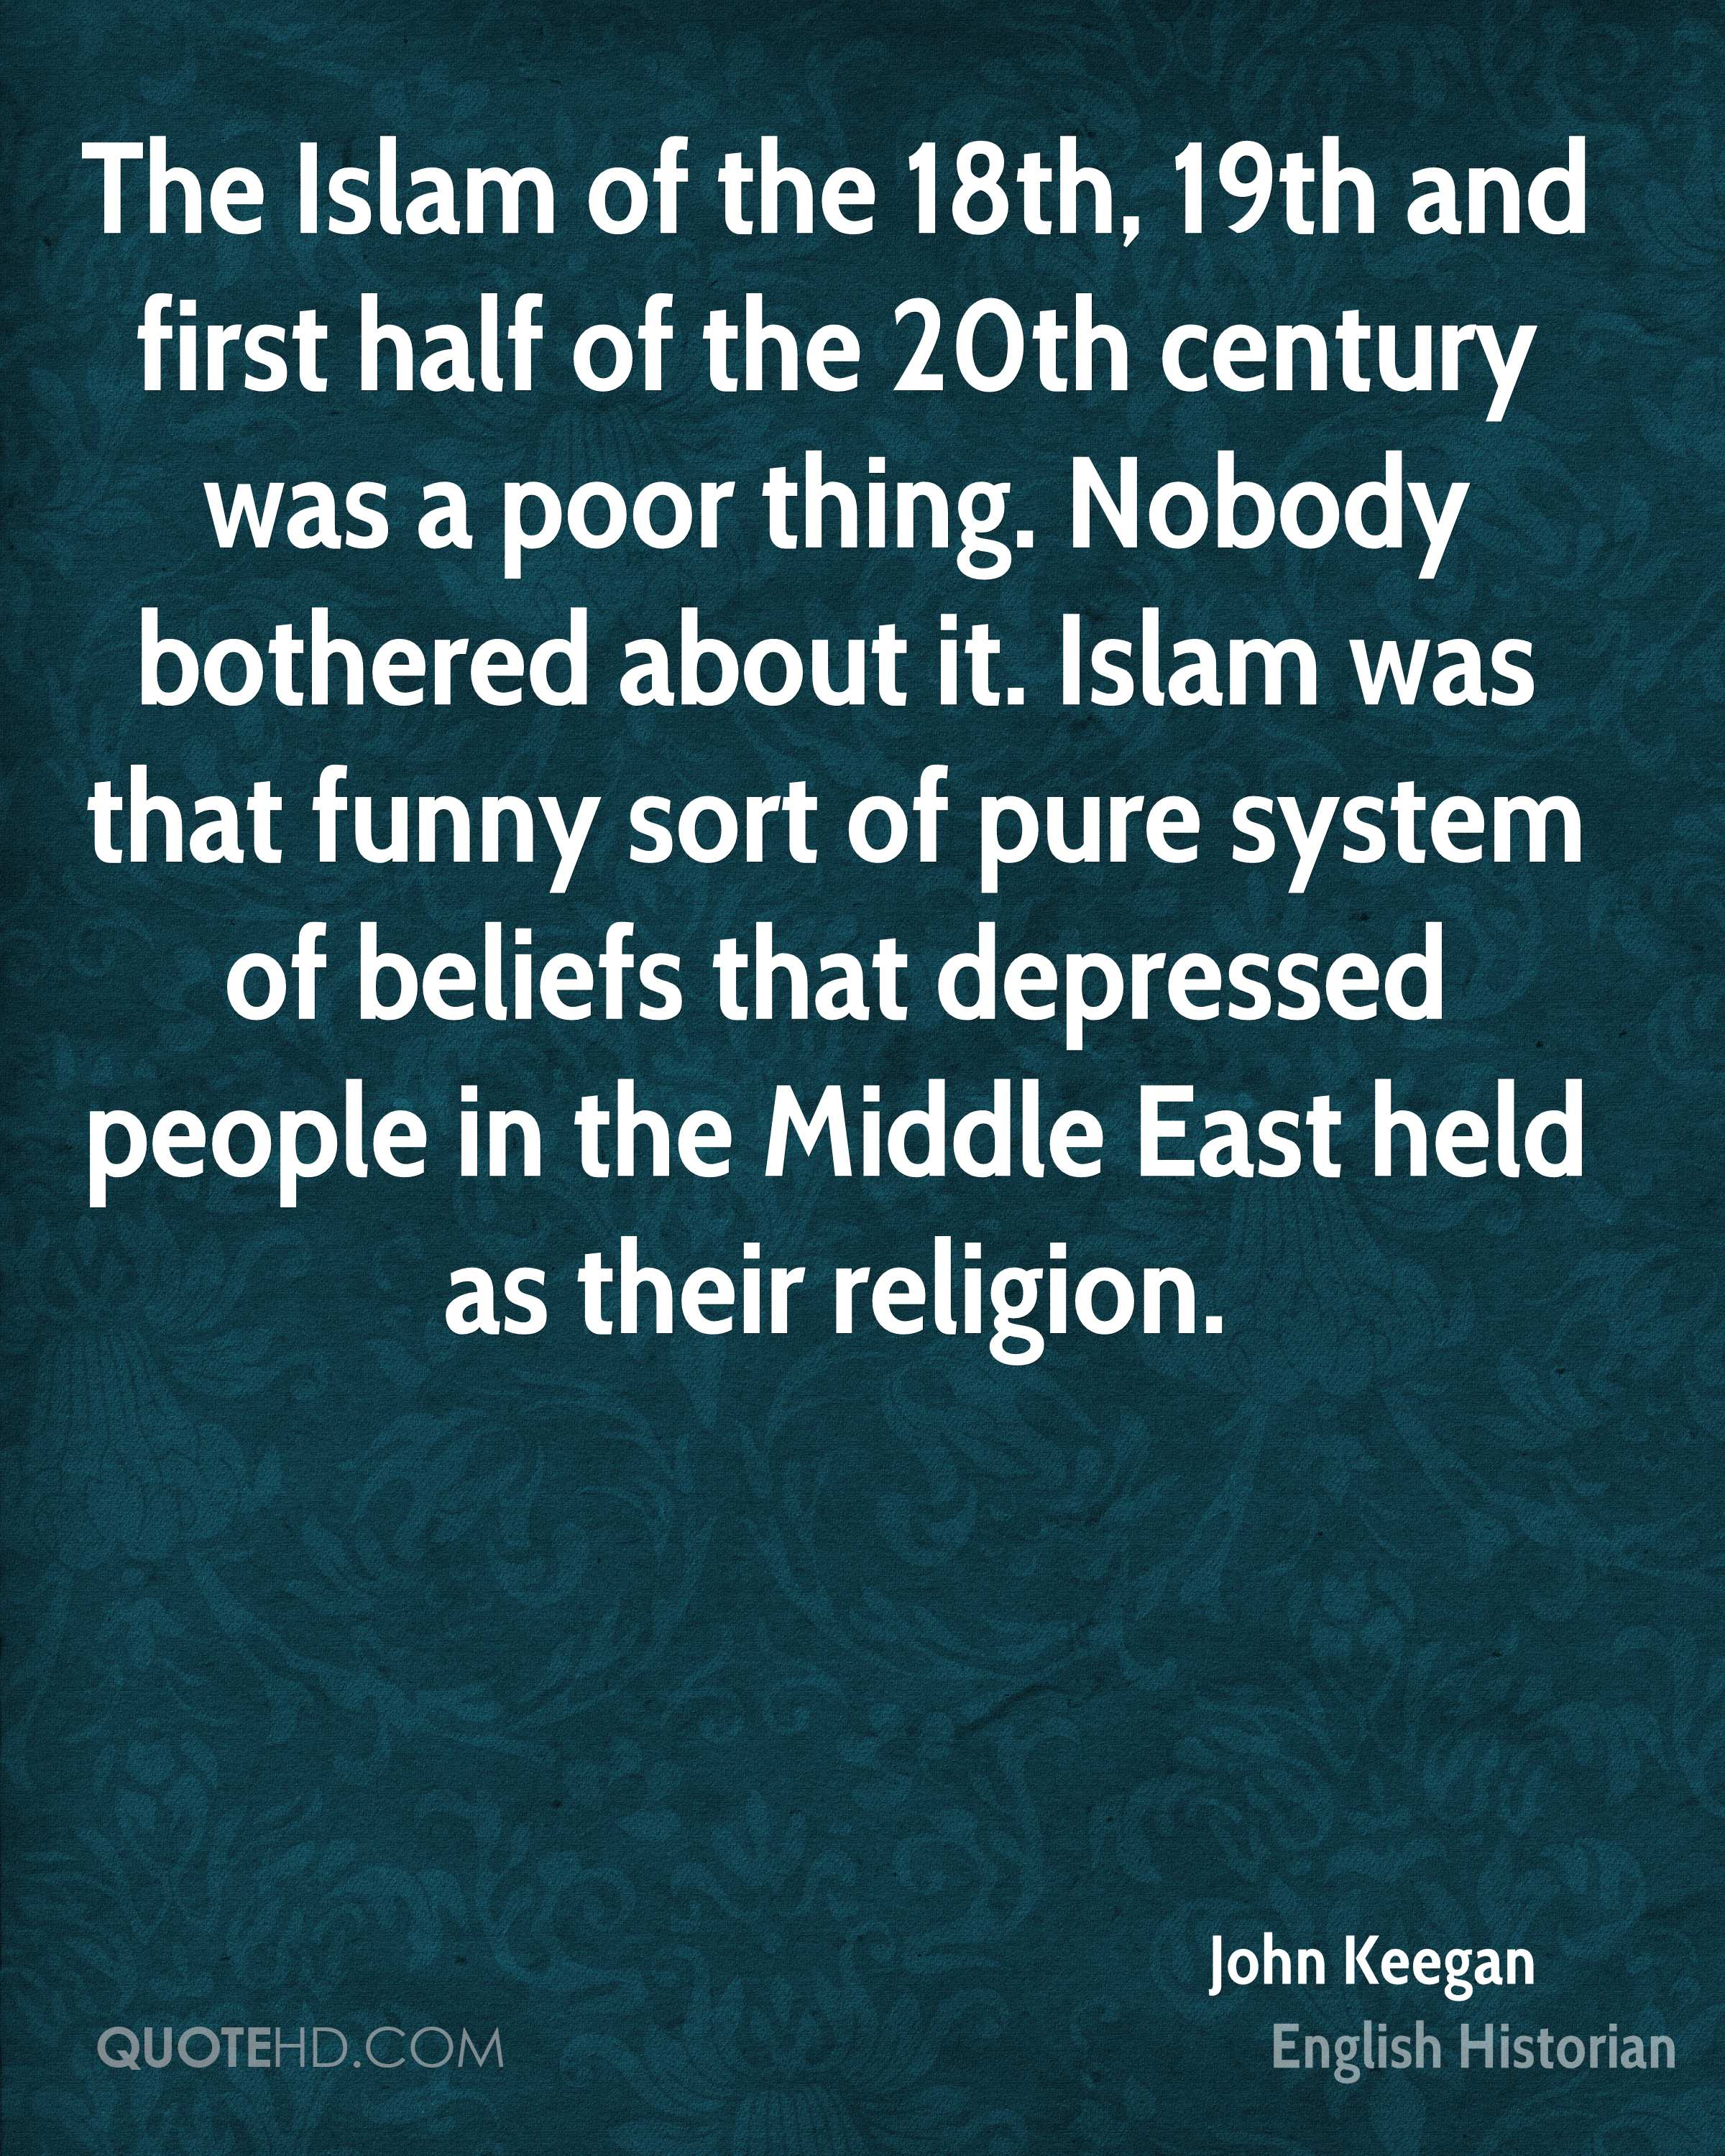 The Islam of the 18th, 19th and first half of the 20th century was a poor thing. Nobody bothered about it. Islam was that funny sort of pure system of beliefs that depressed people in the Middle East held as their religion.